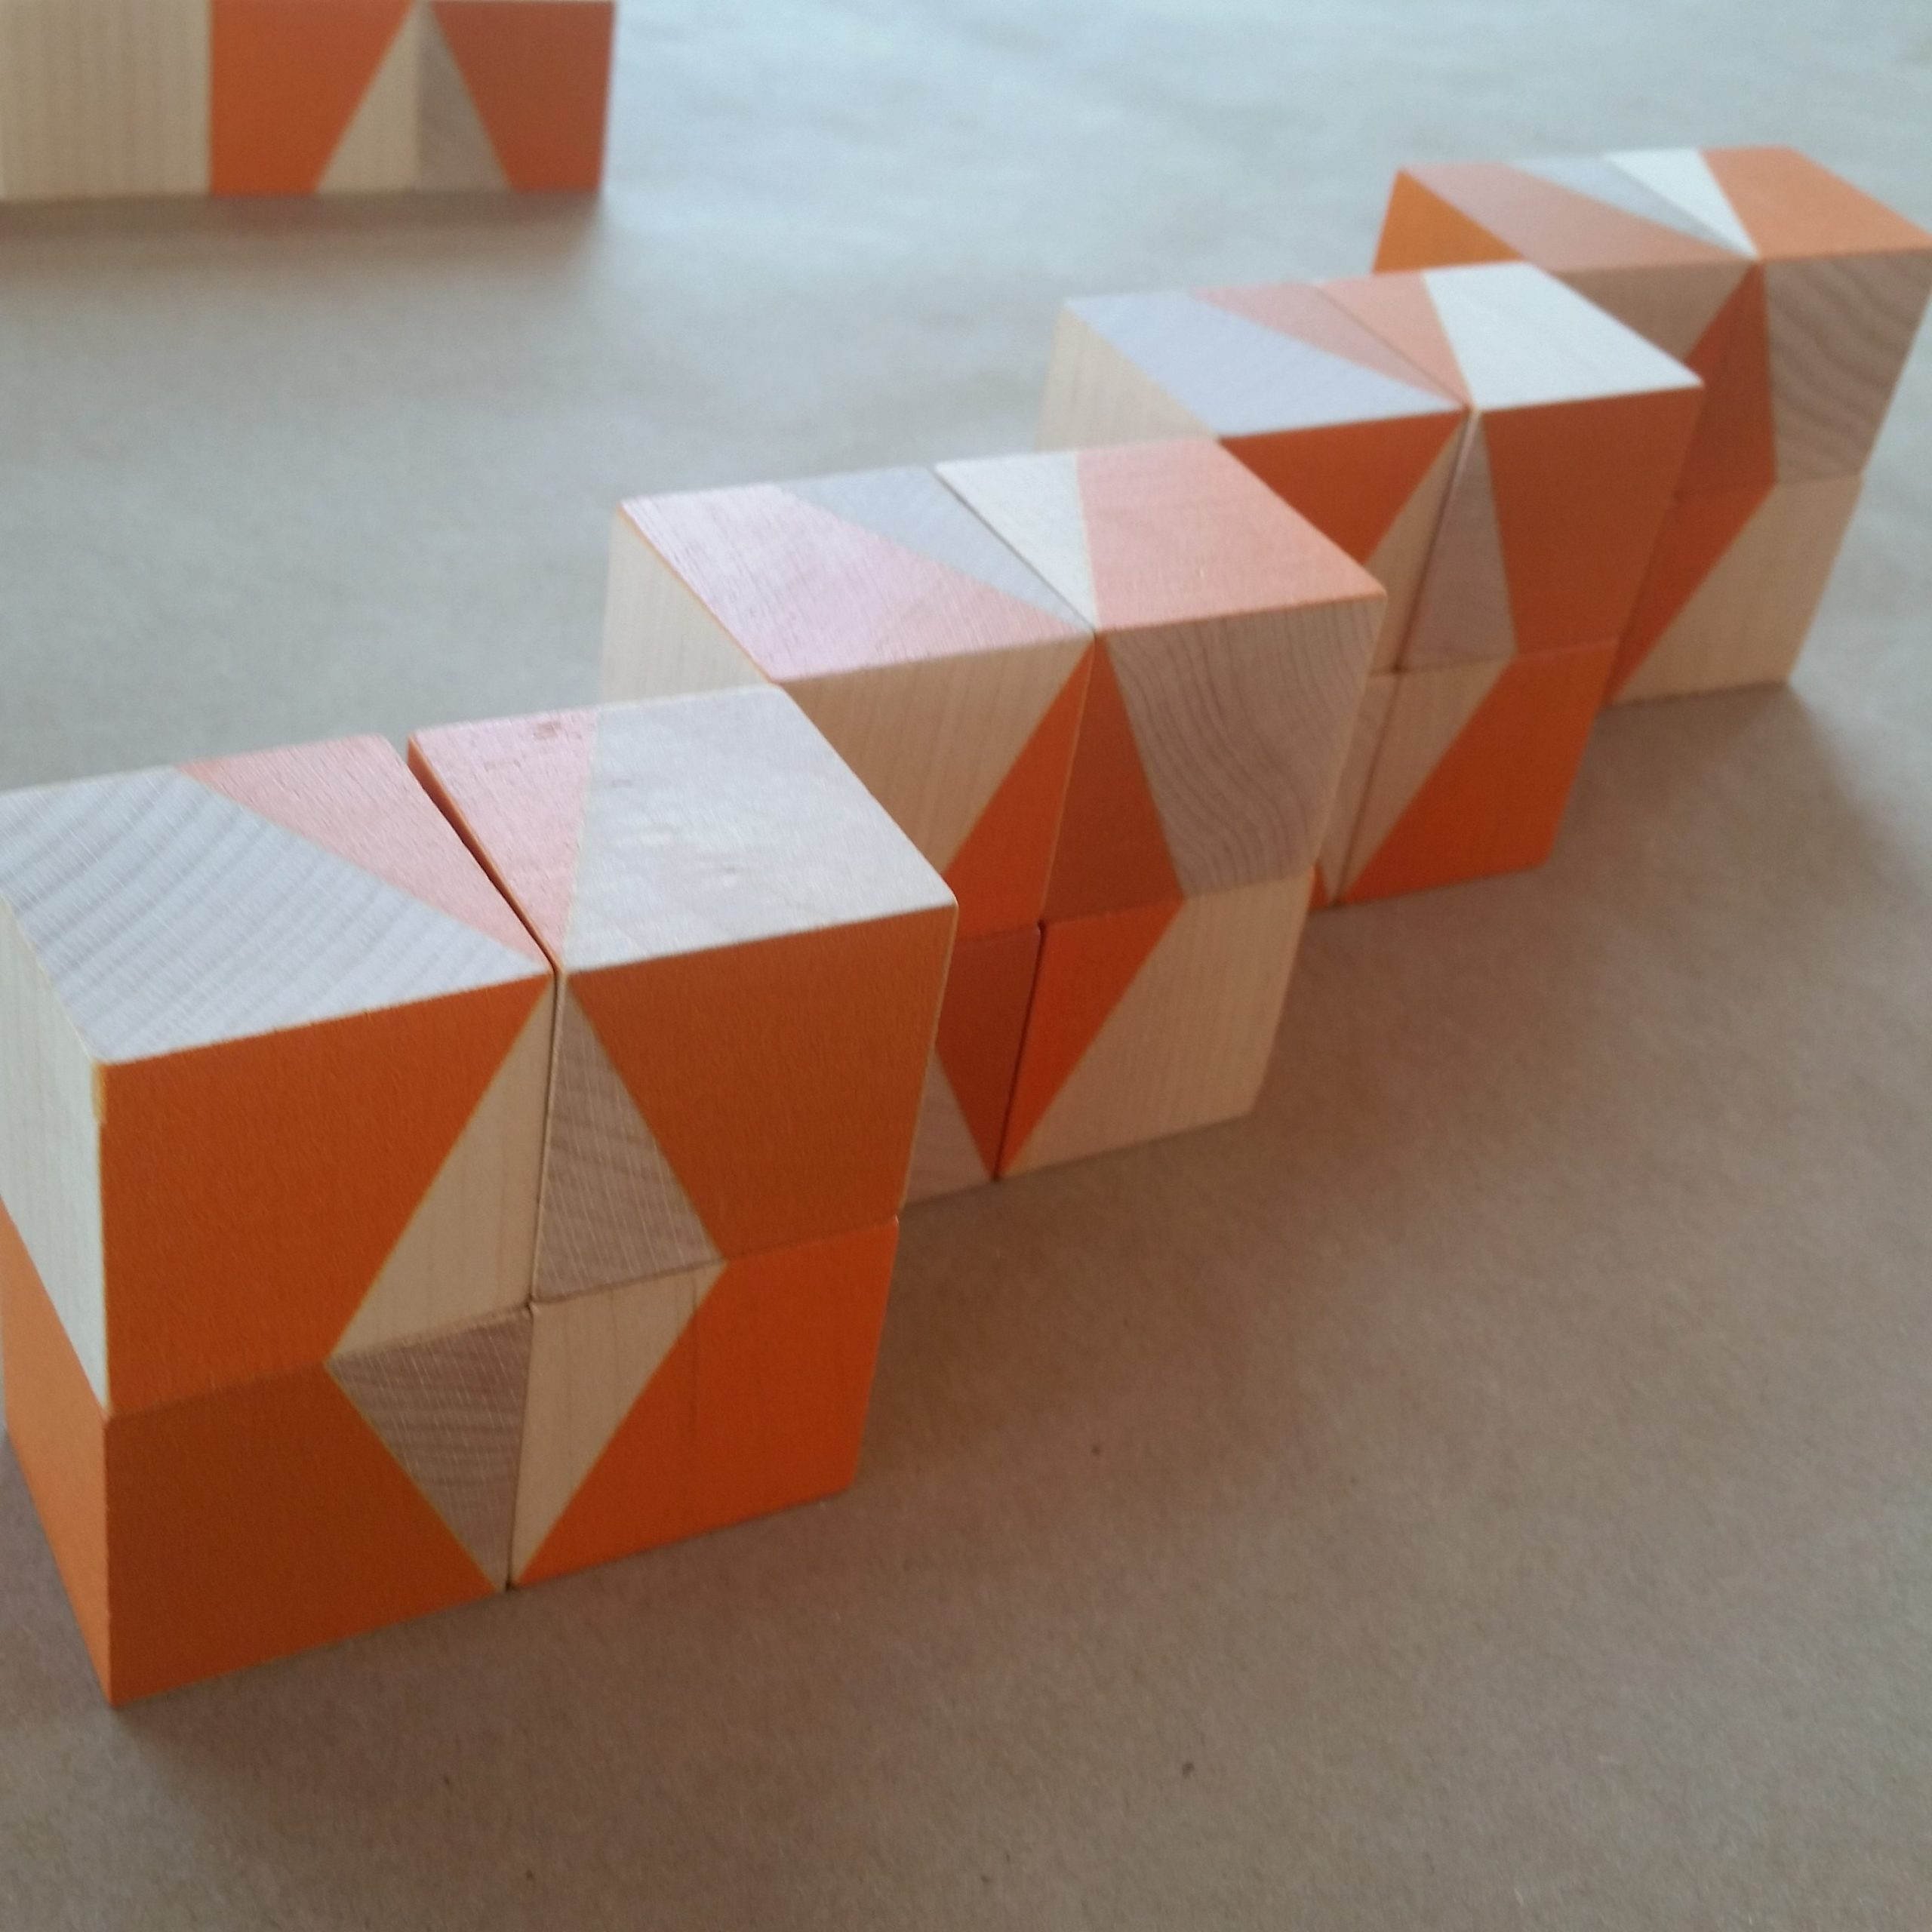 Orange and natural wood blocks with geometric patterns